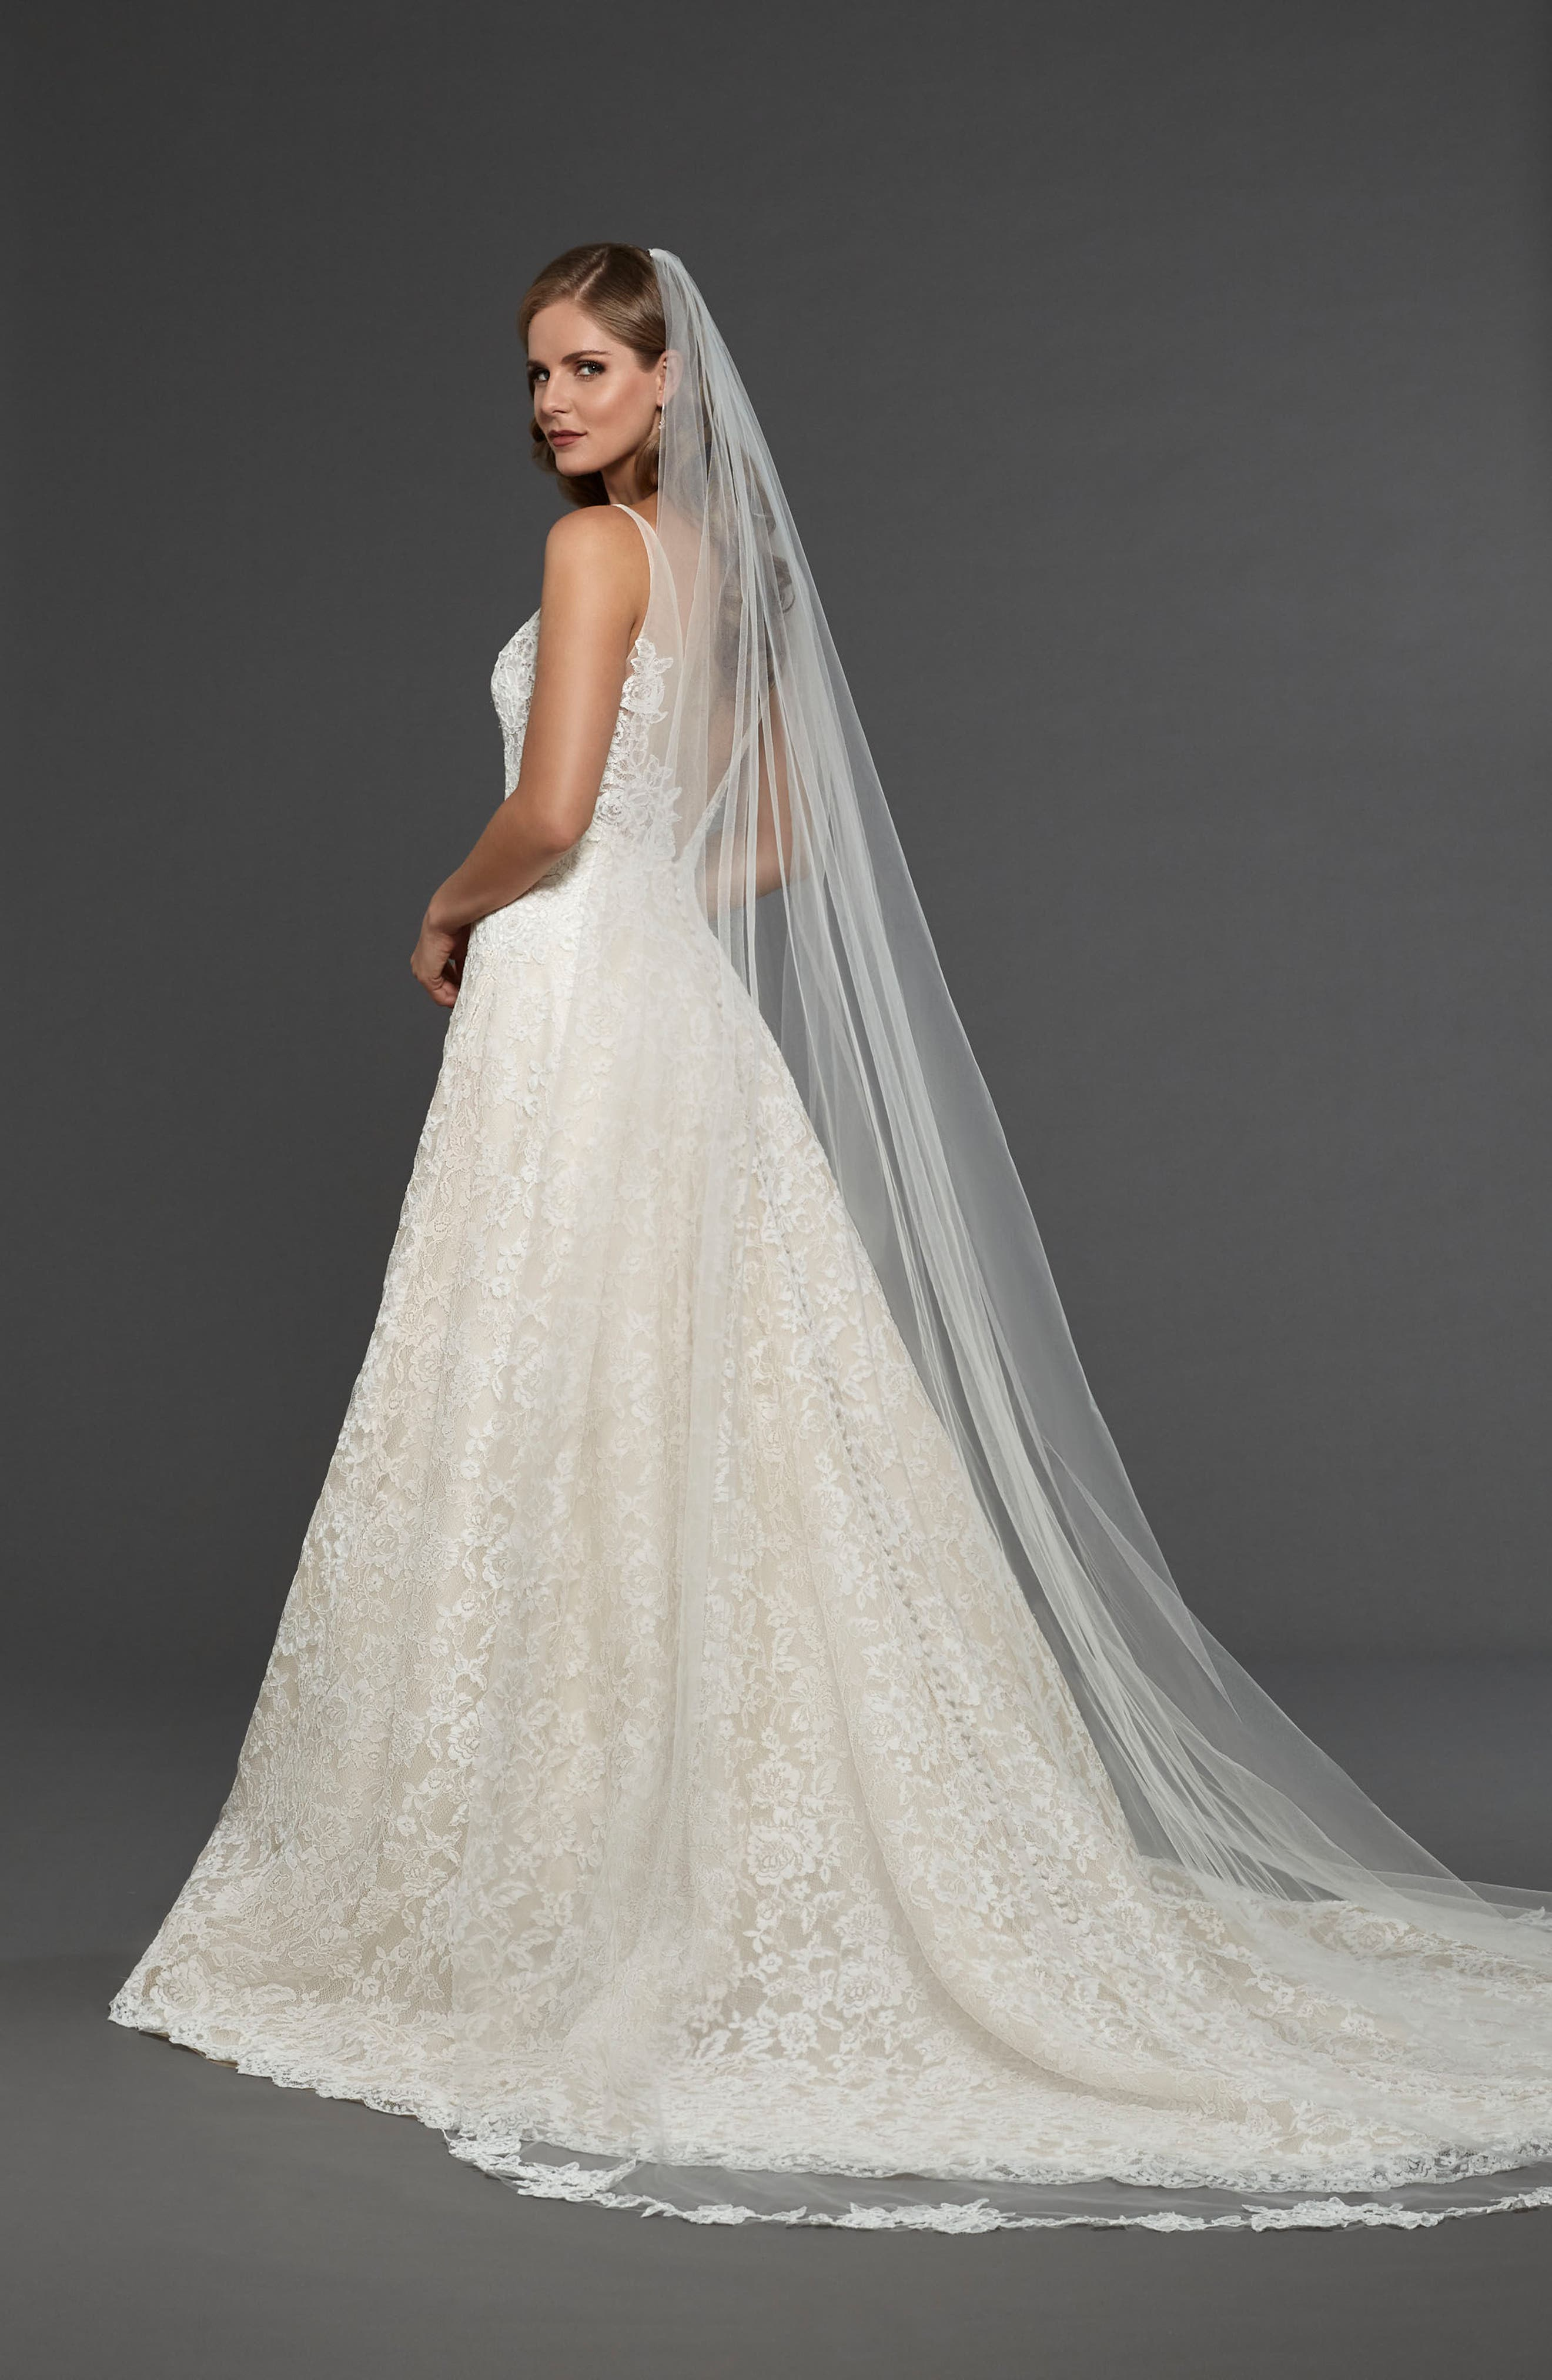 Suzanna Allover Lace Gown,                             Alternate thumbnail 5, color,                             900